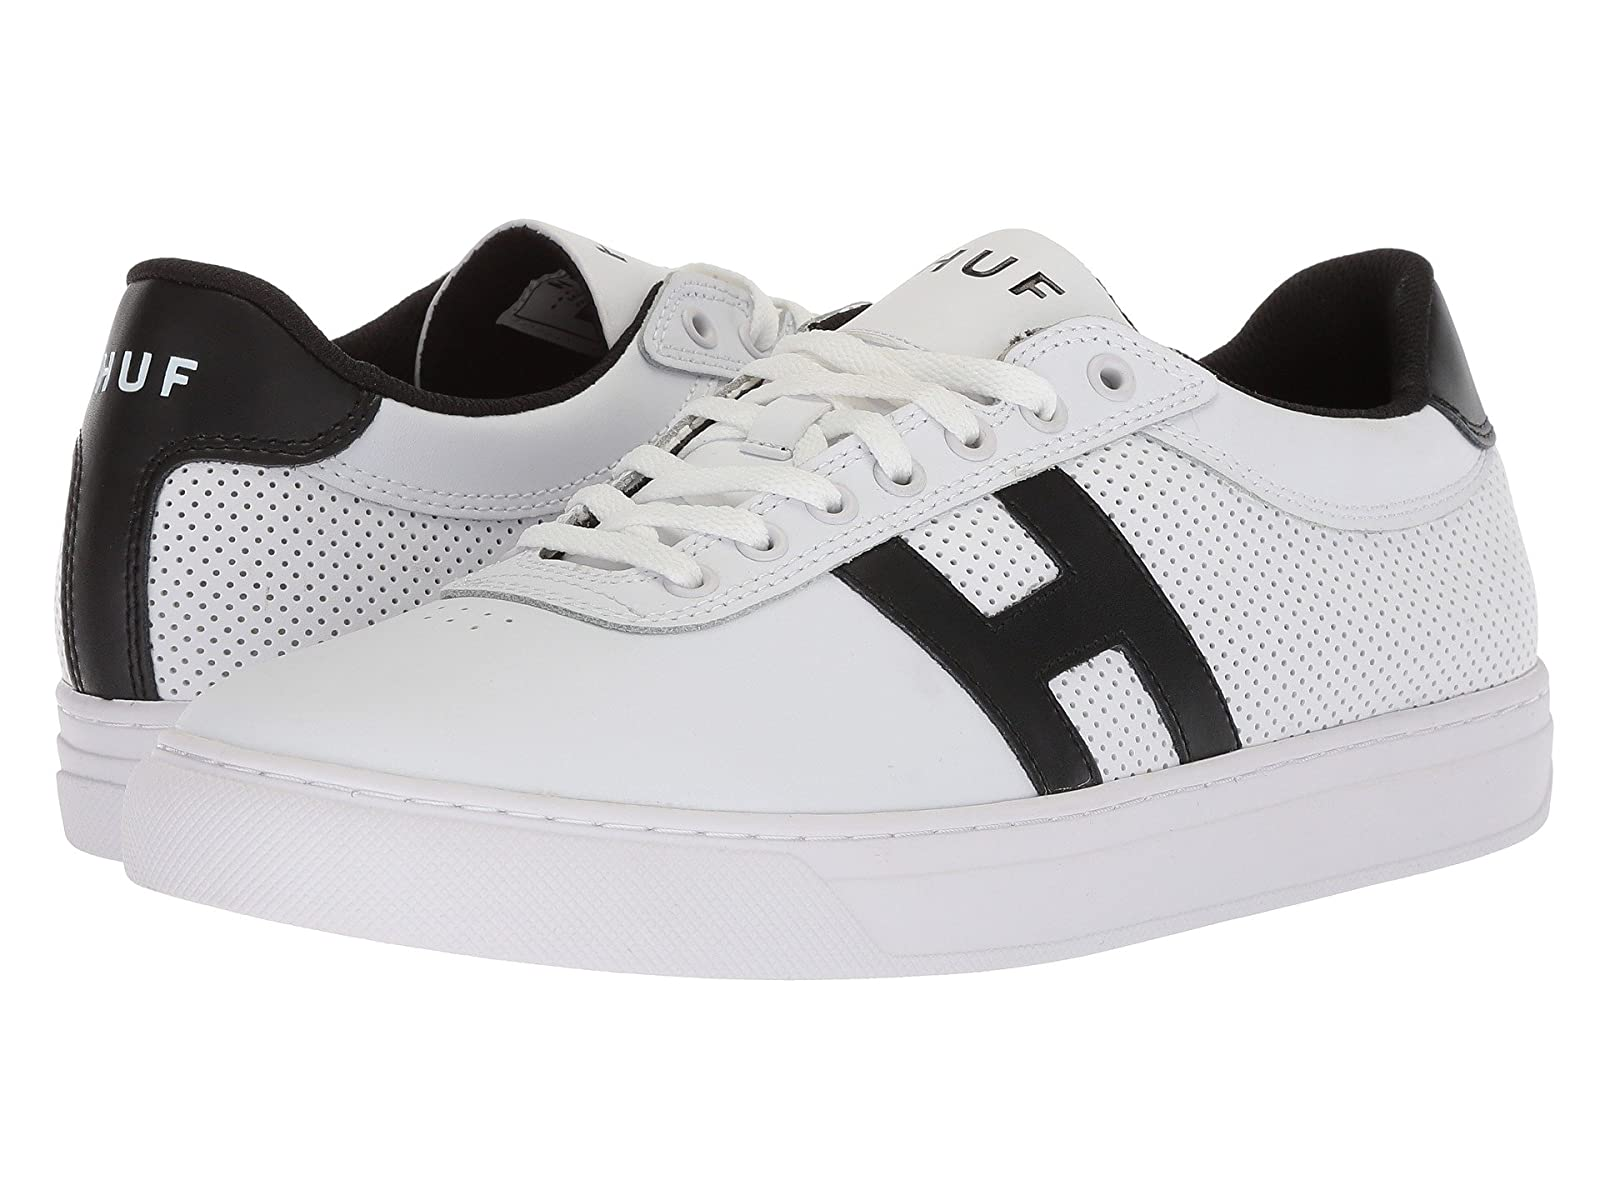 HUF SotoAtmospheric grades have affordable shoes